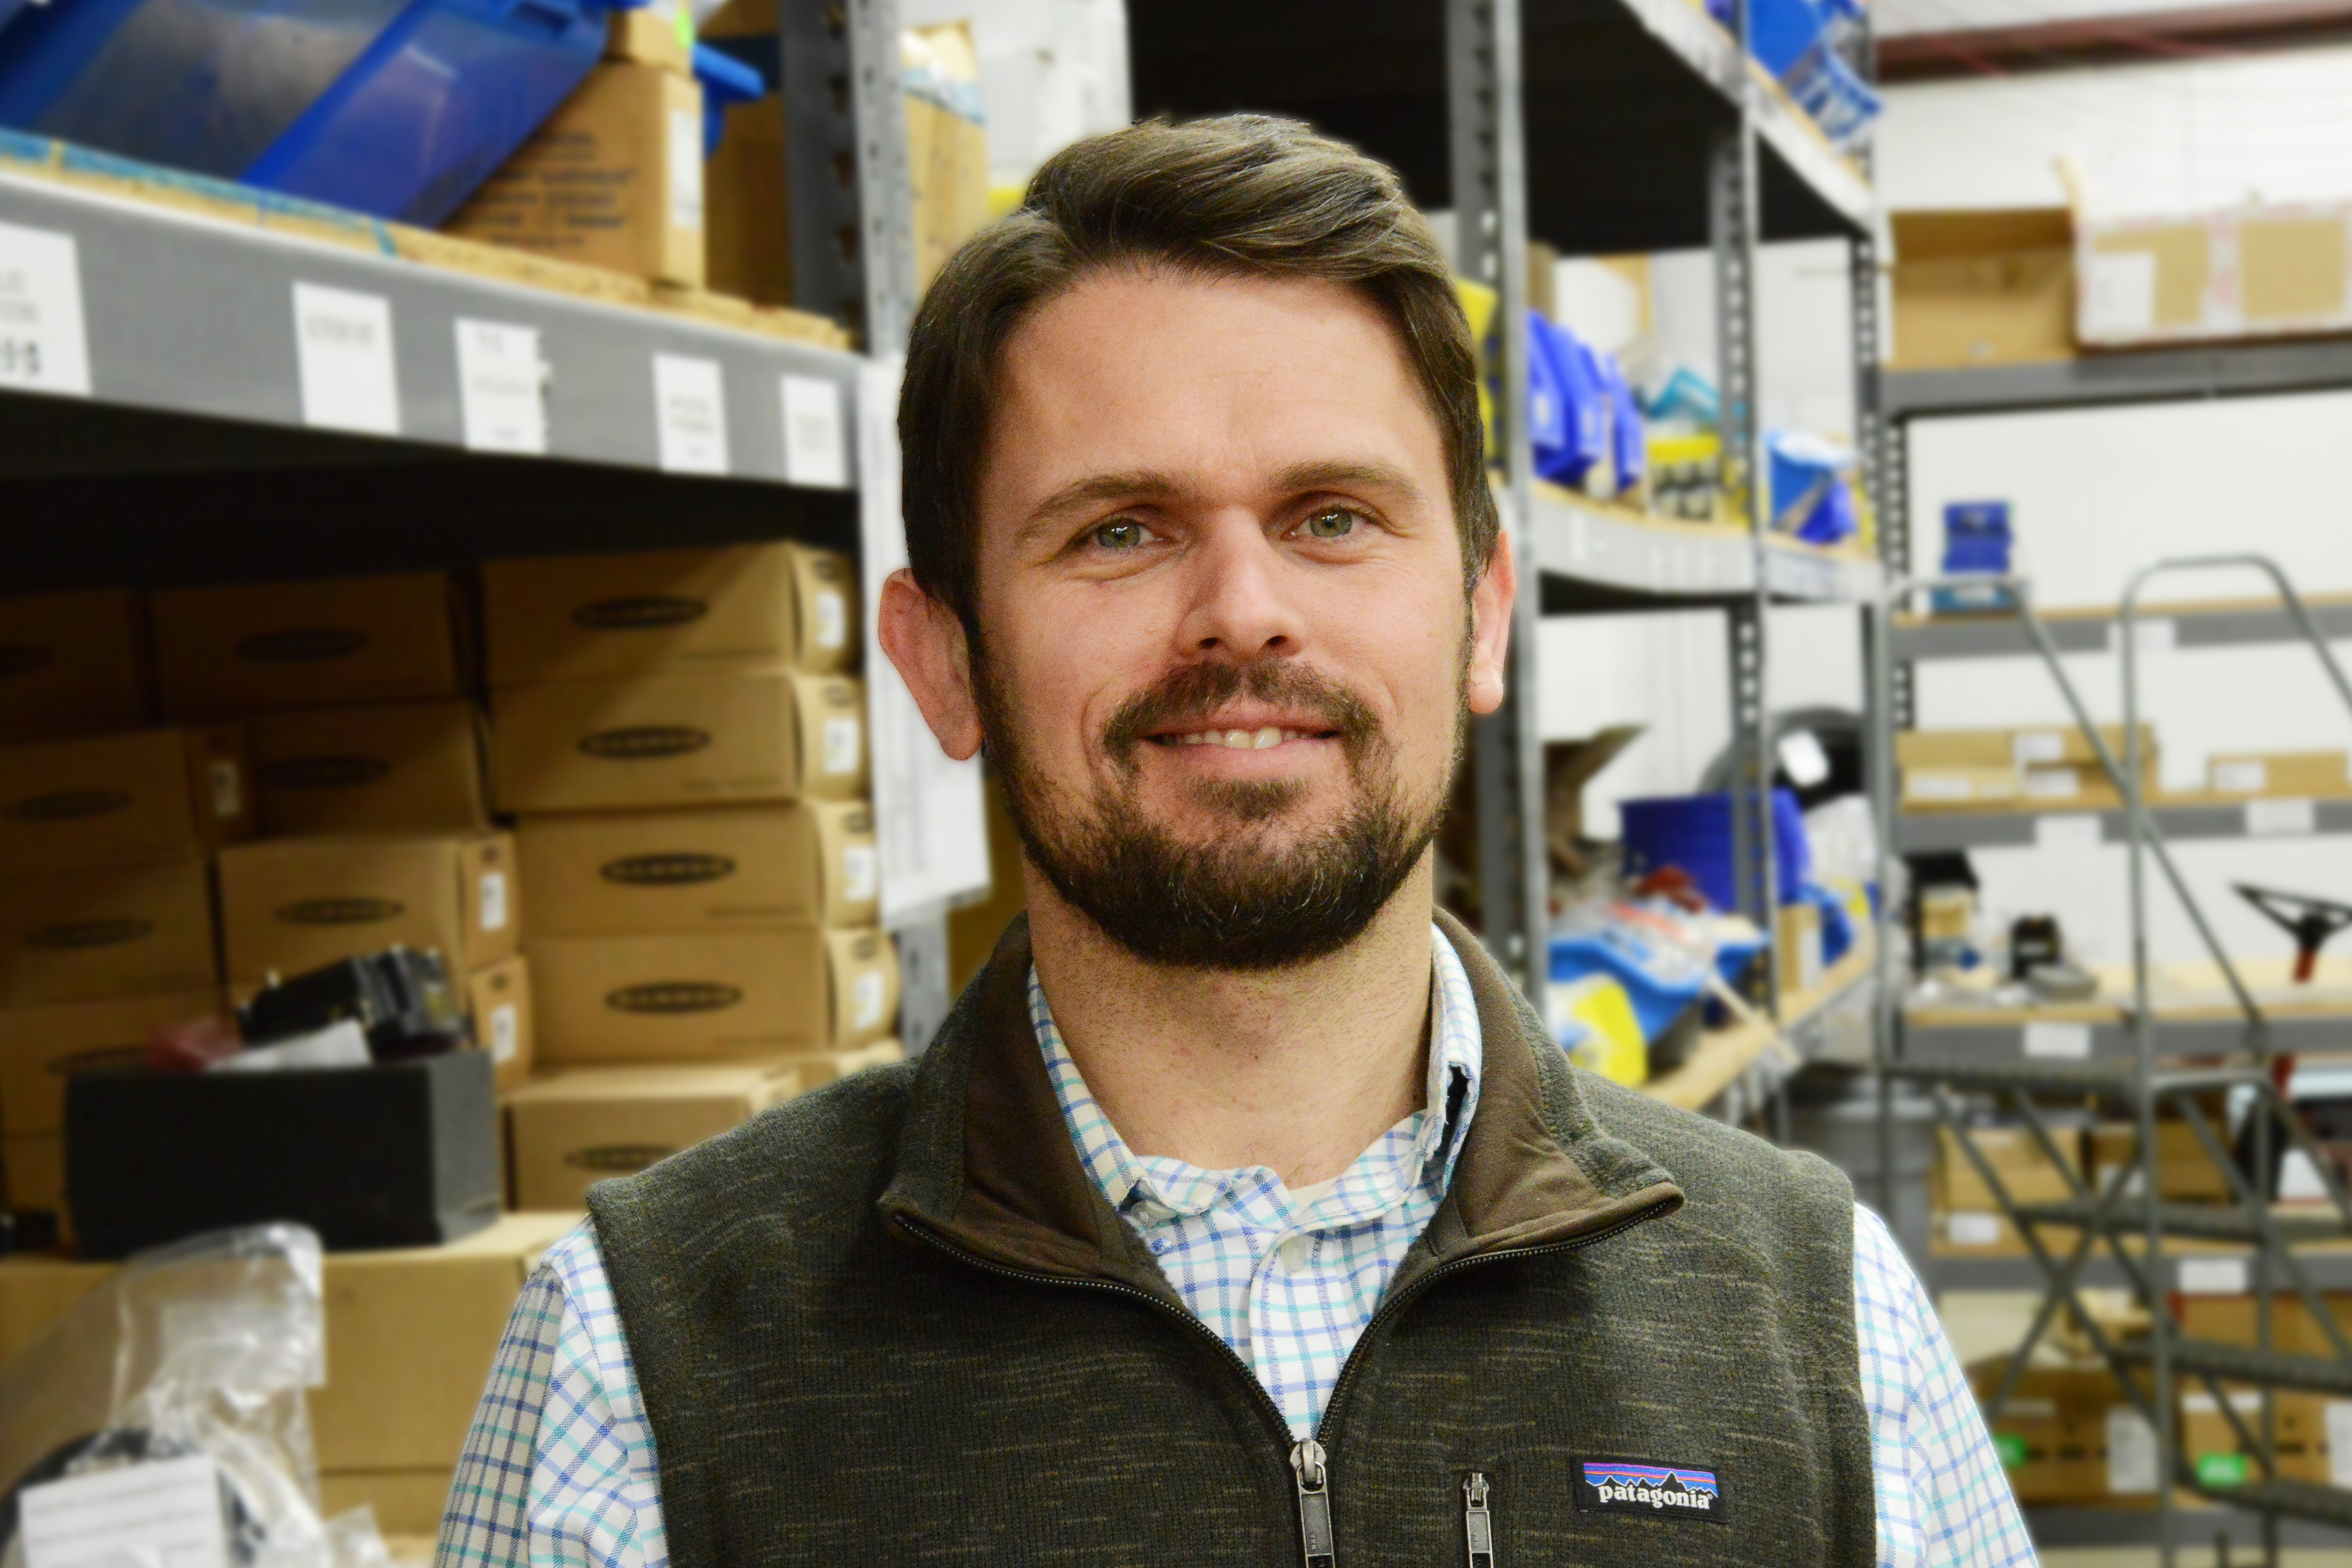 Former Alabama Power engineer joins SPOC Automation in Trussville